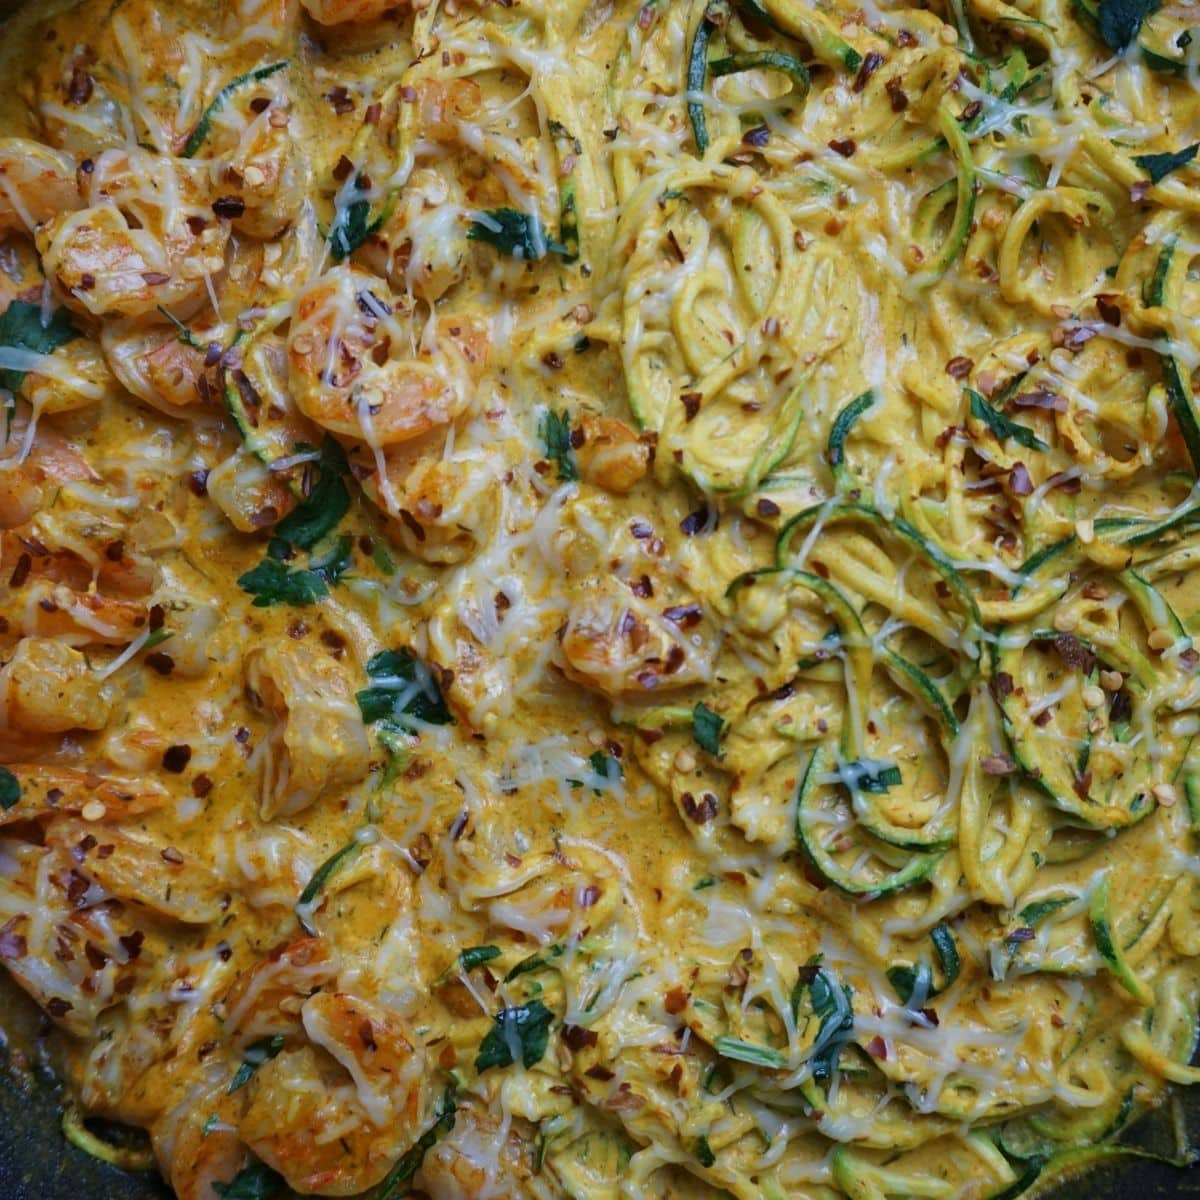 shrimp and zucchini noodles with Mediterranean seasonings